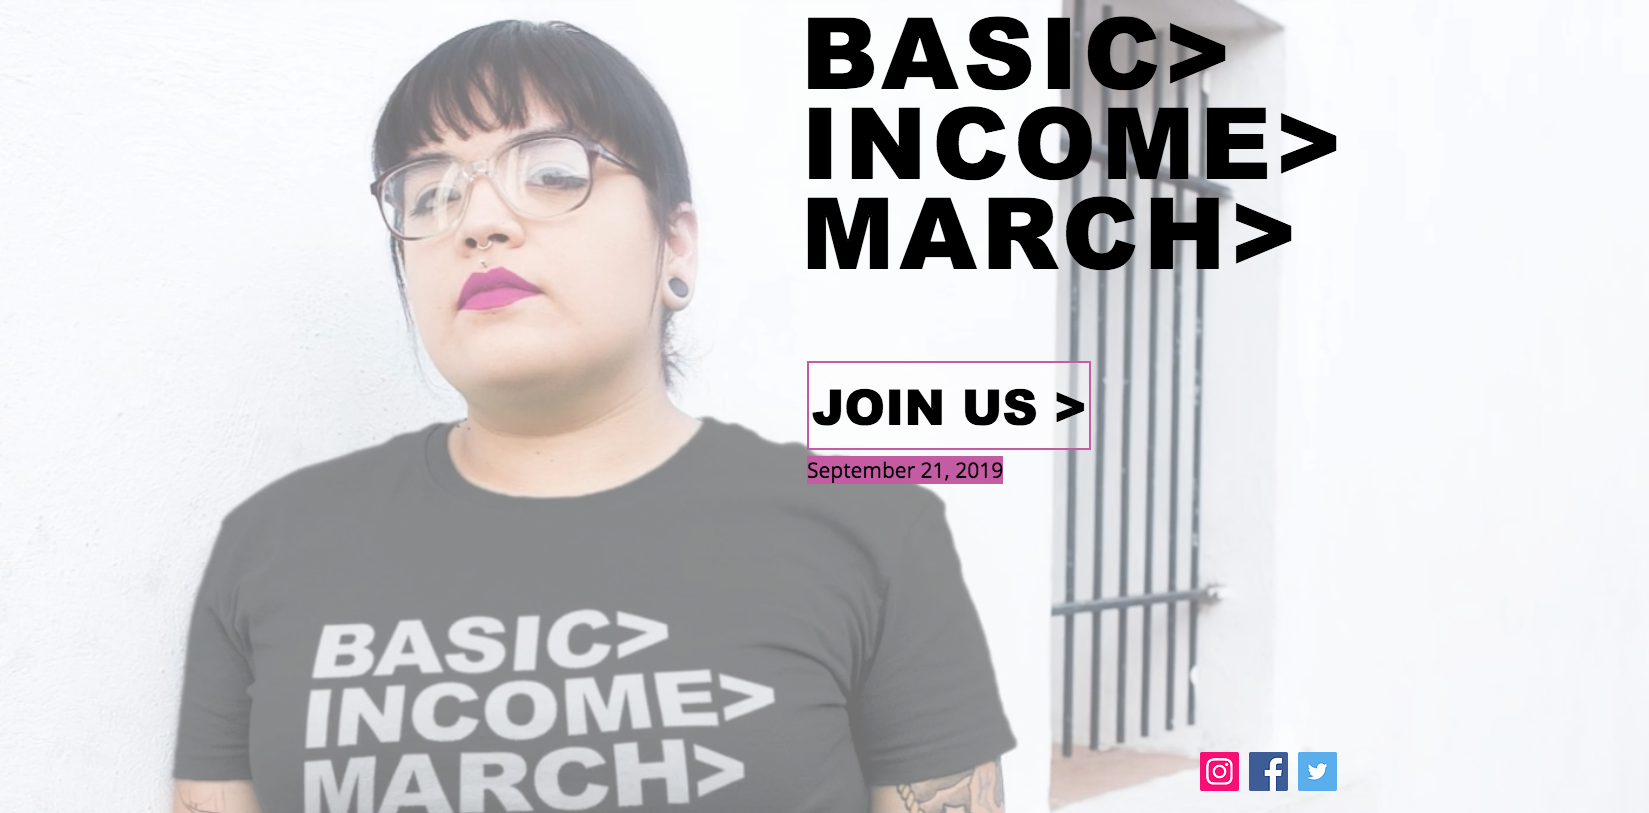 Basic Income March, New York City, October 26, 2019 (updated)